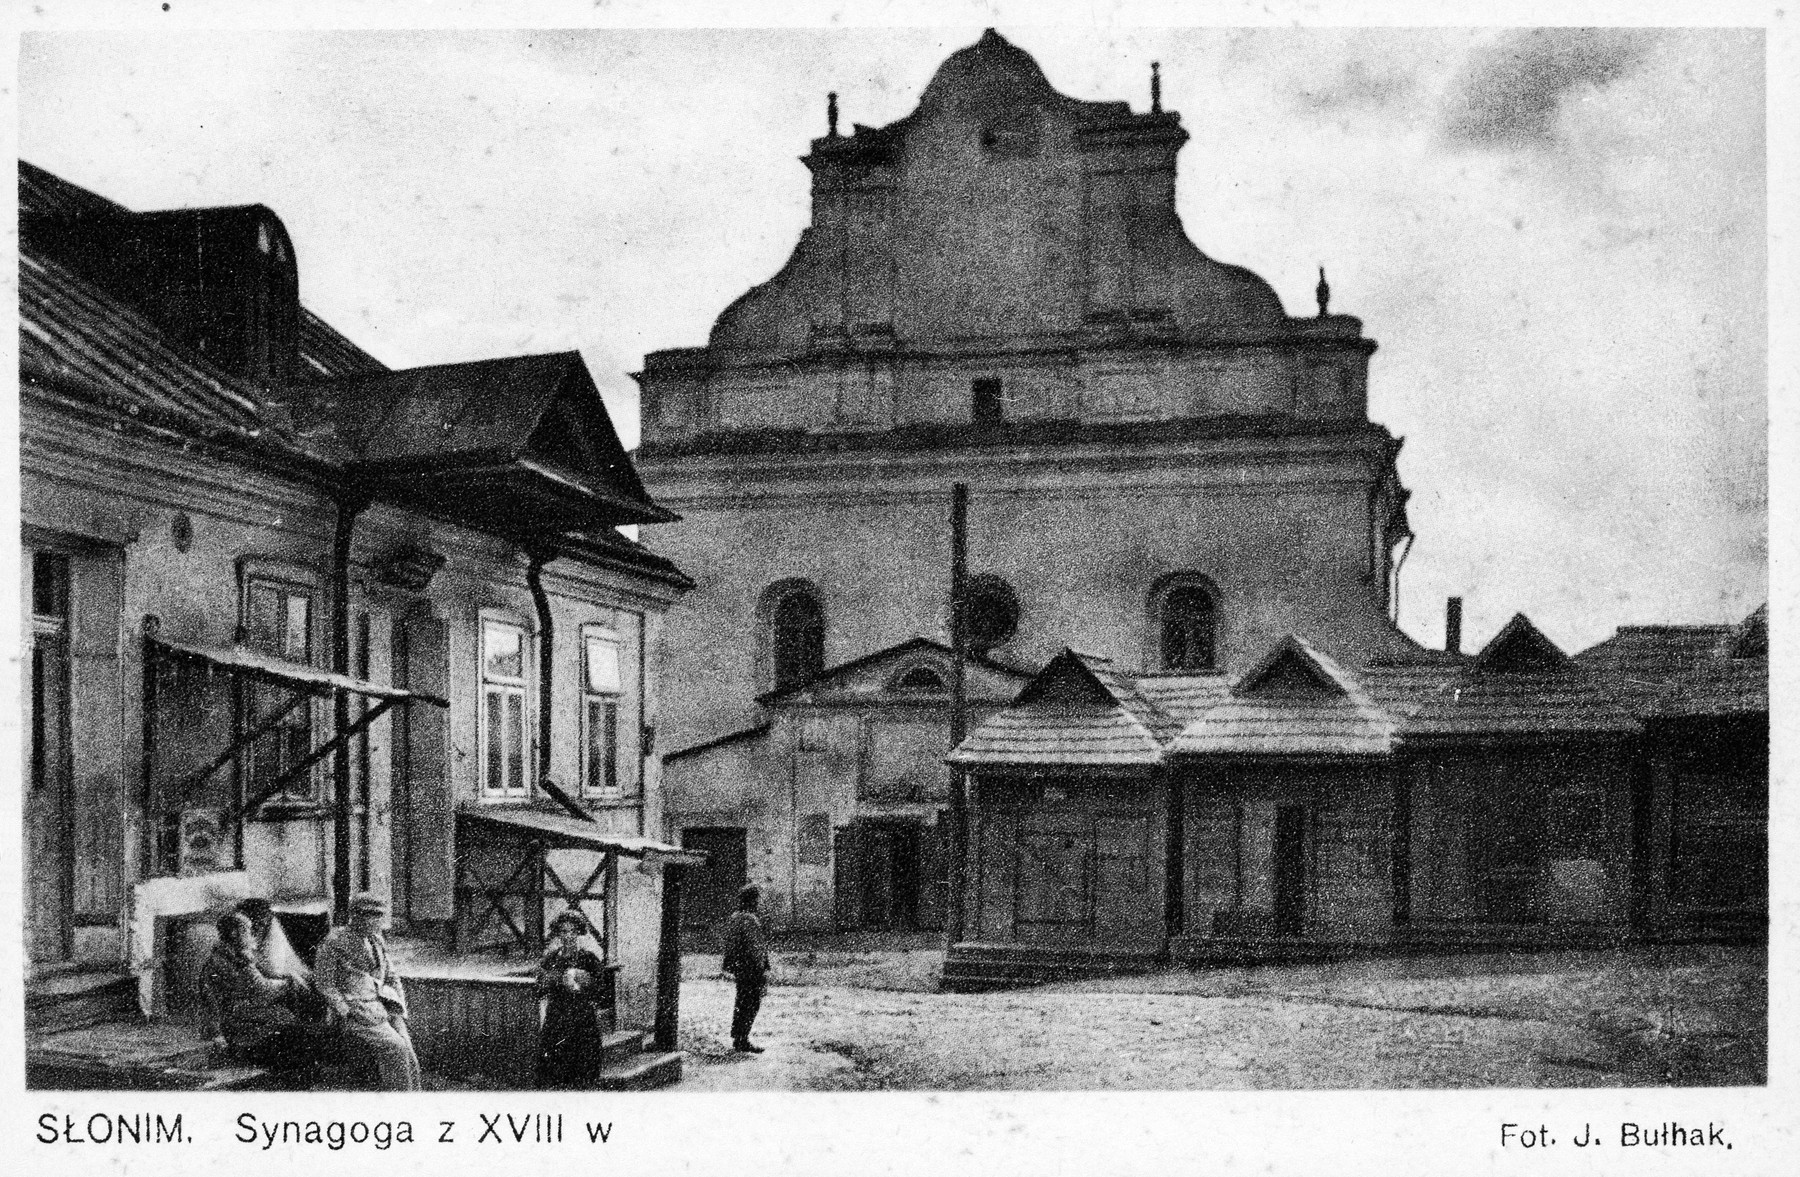 Exterior view of the synagogue in Slonim.